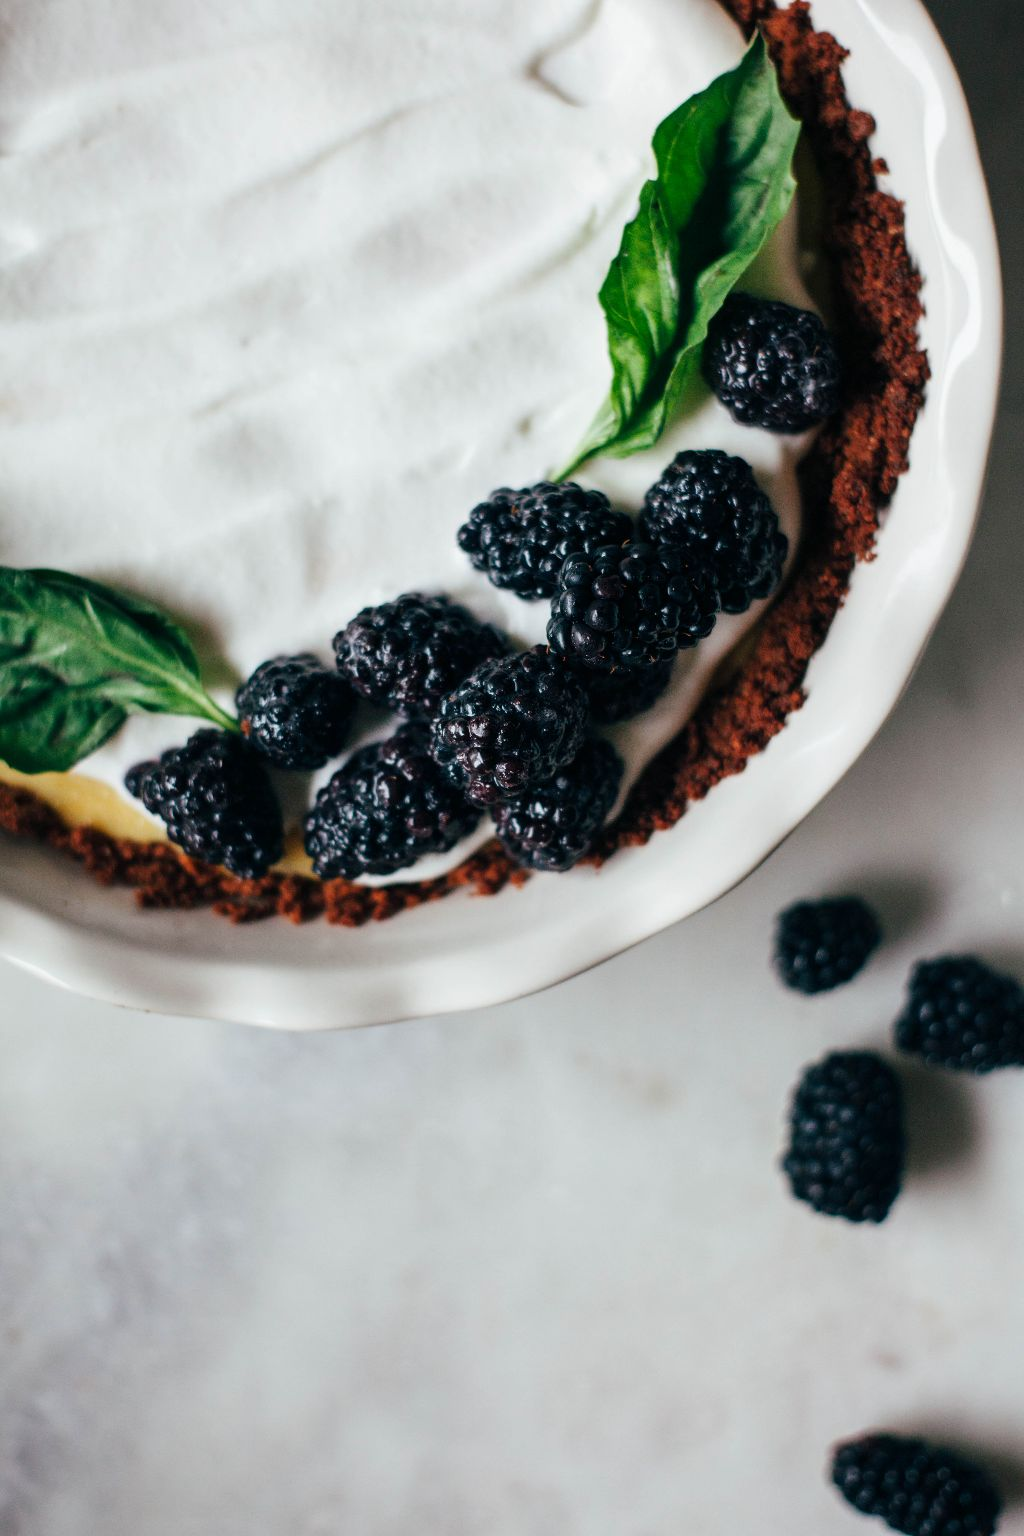 Lemon Pie with Sugared Blackberries - Tastemaker Blog